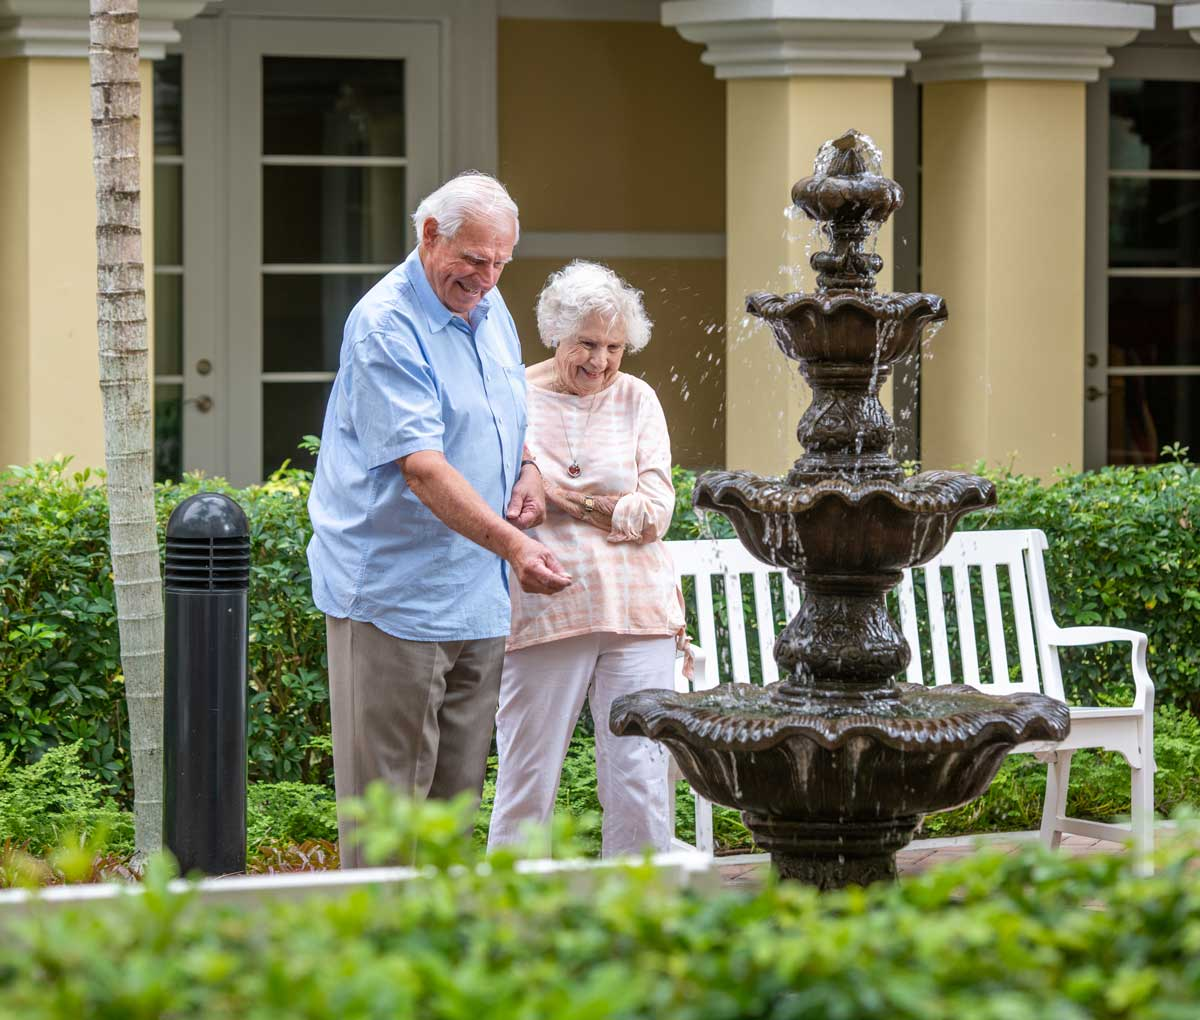 6 Ways Senior Living Improves Quality of Life for Seniors